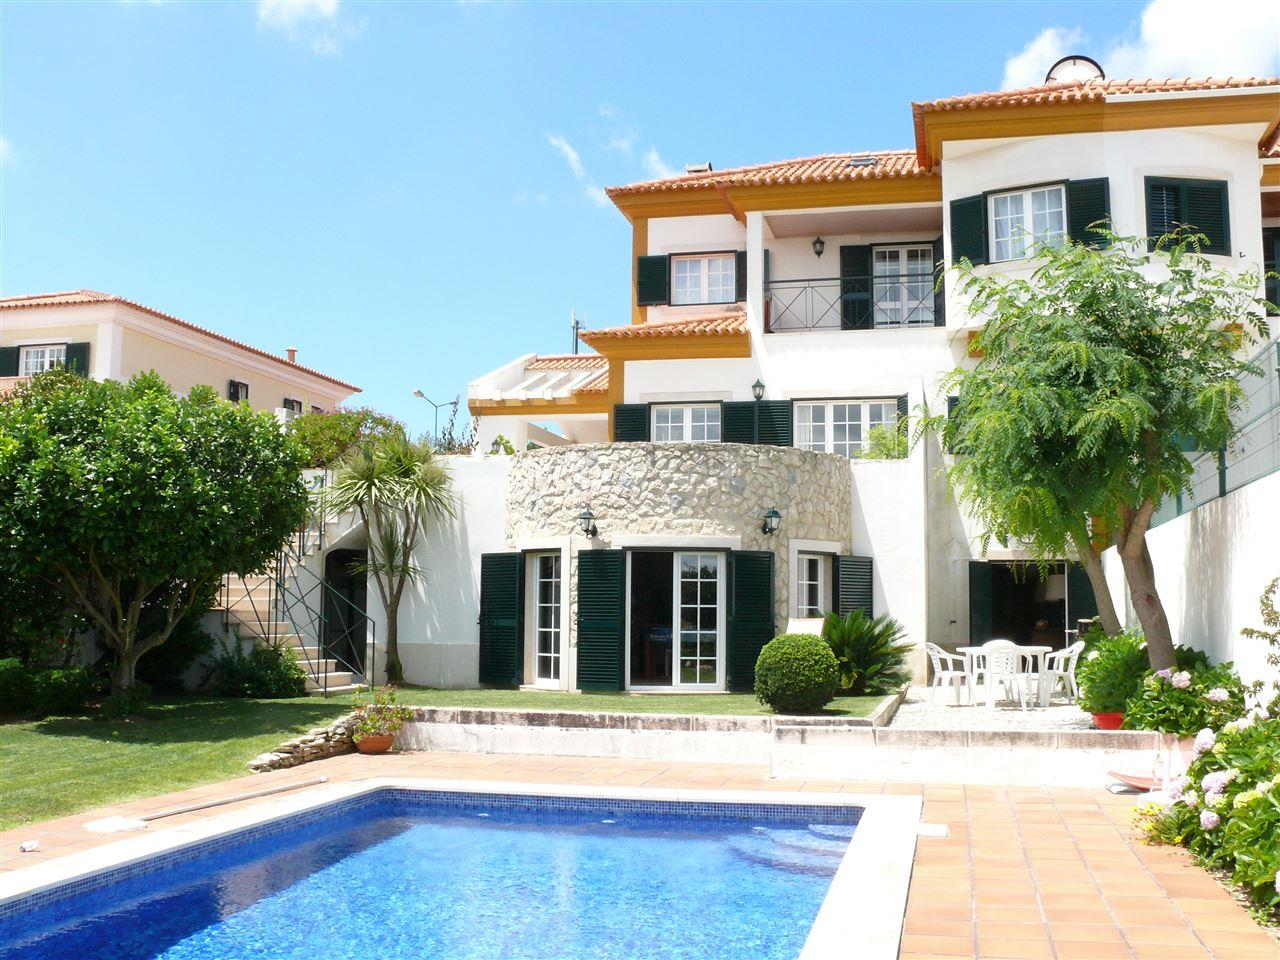 Single Family Home for Sale at Semi-detached house, 4 bedrooms, for Sale Sintra, Lisboa, Portugal